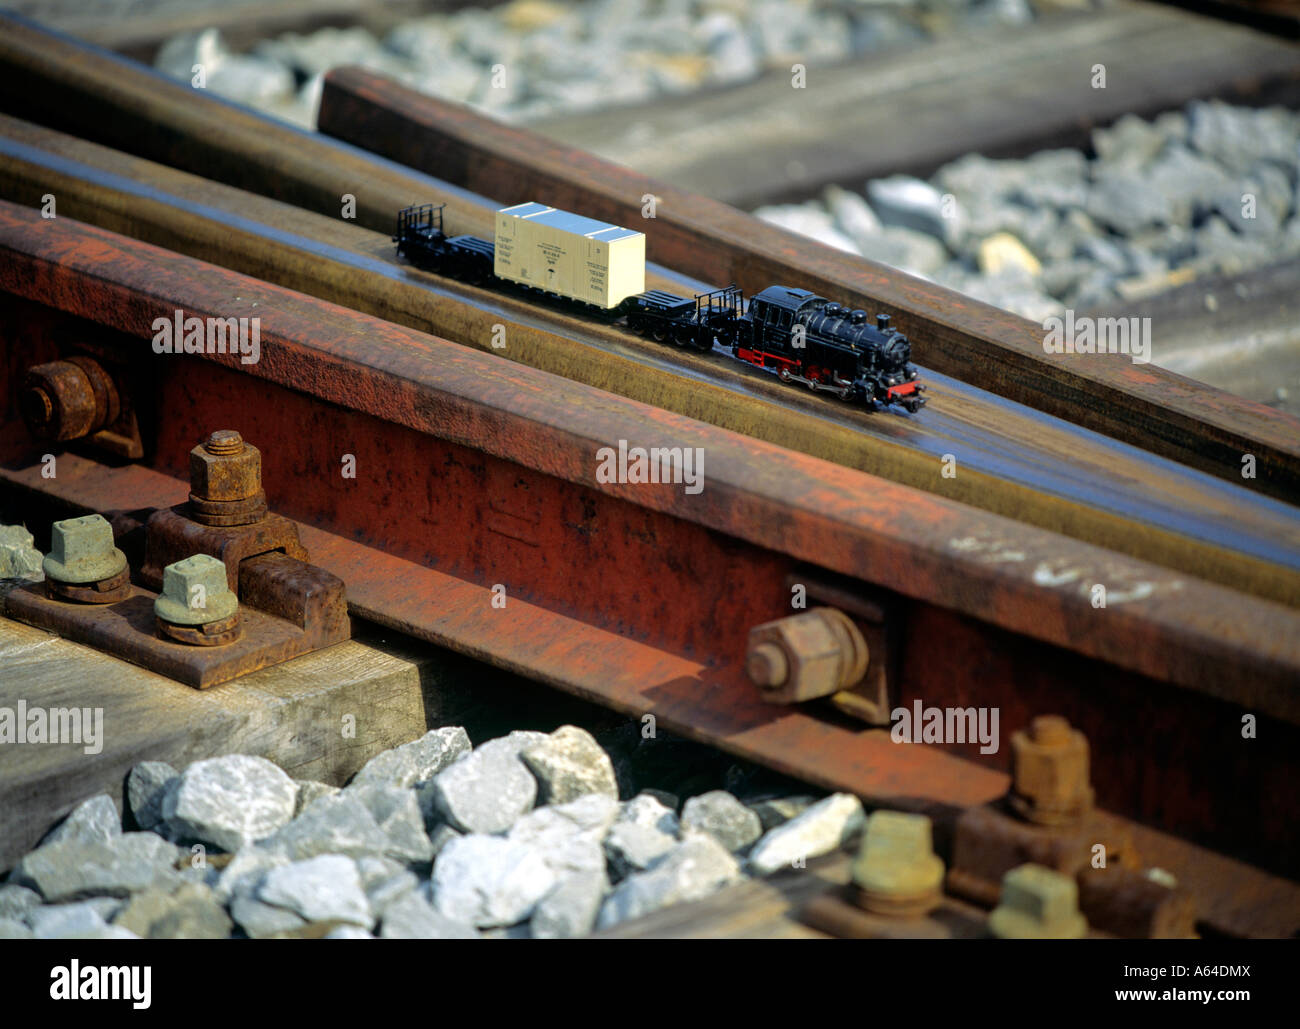 scale model of cargo train crossing railroad track editorial use only - Stock Image